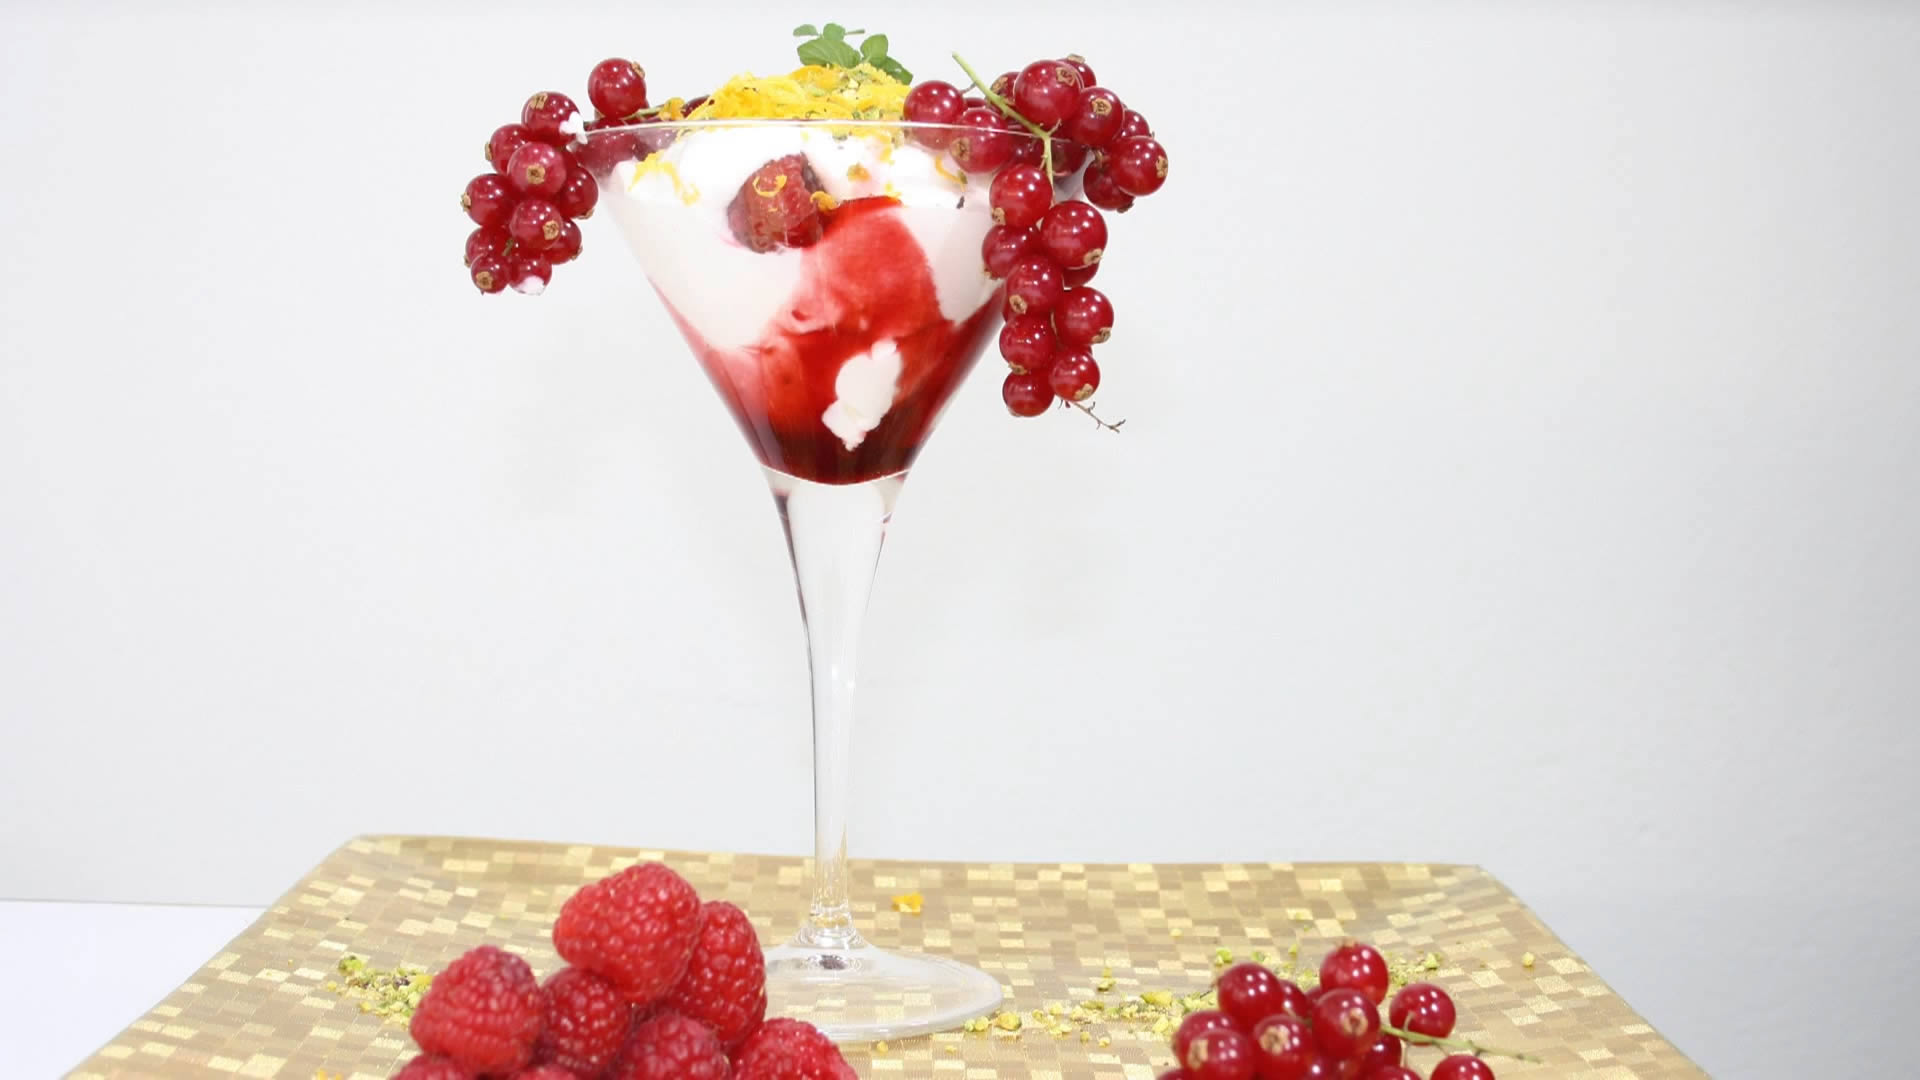 mousse di yogurt ai frutti di bosco